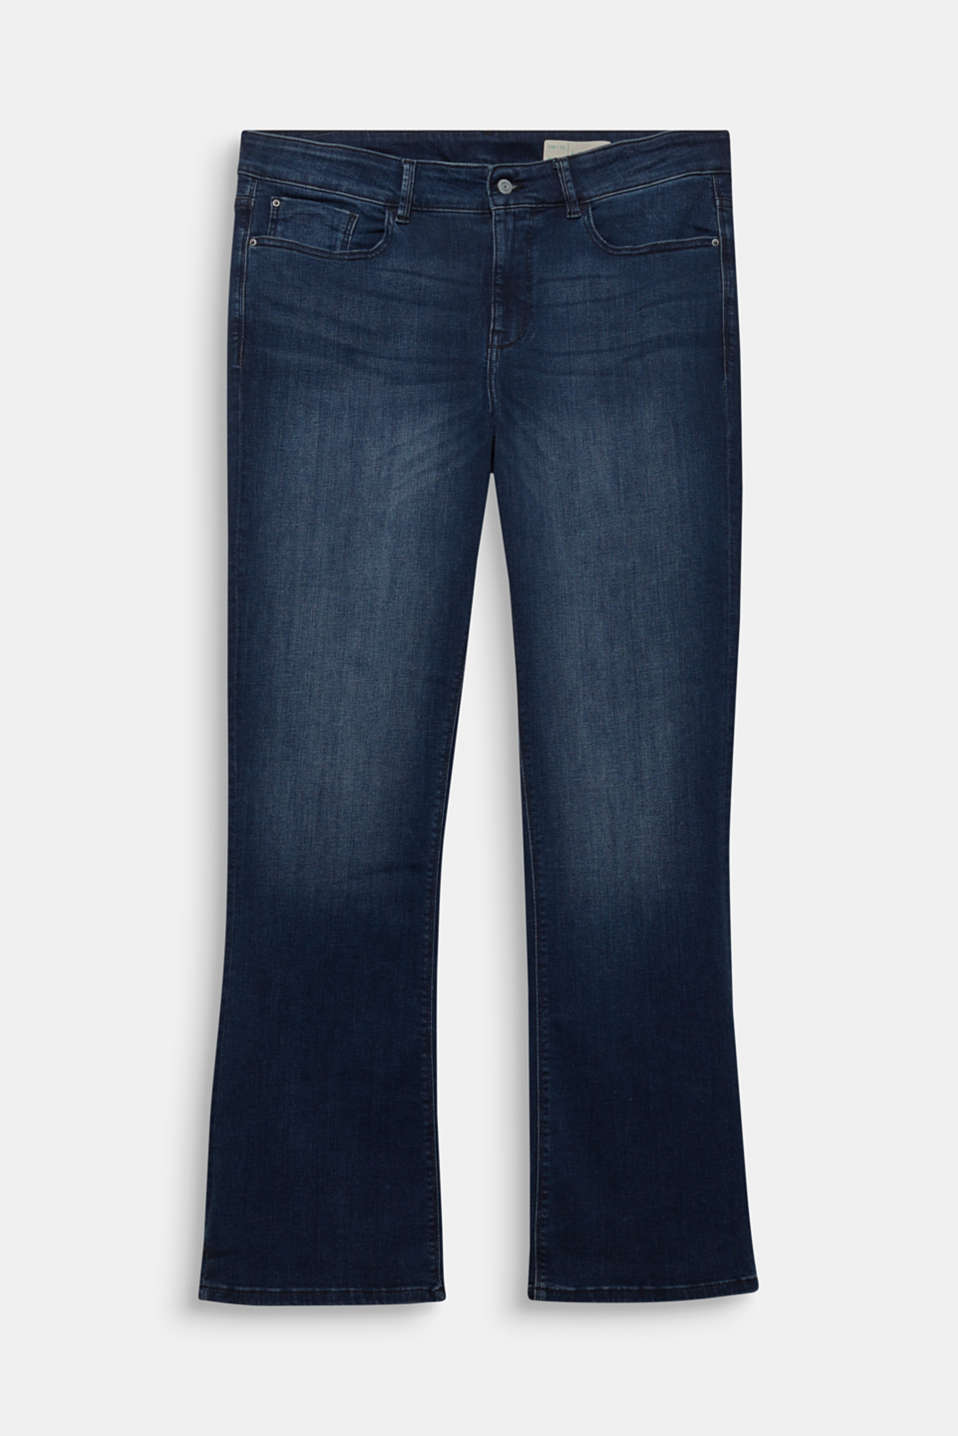 CURVY basic jeans with stretch, BLUE DARK WASH, detail image number 6